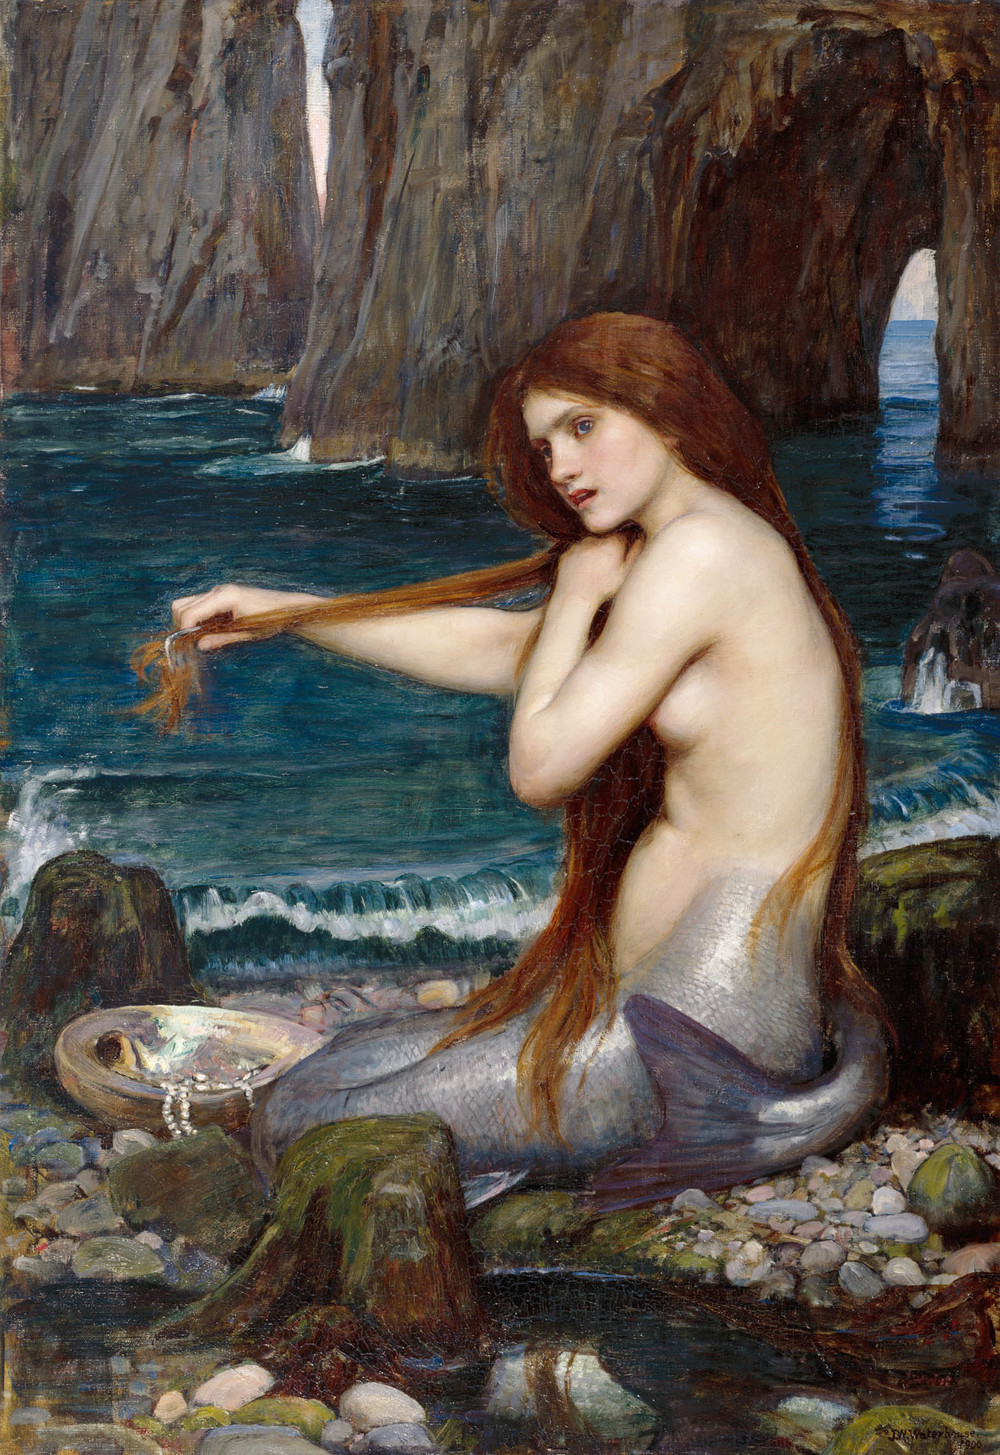 John William Waterhouse, A Mermaid, 1900, oil on canvas, ® Royal Academy of Arts, London, Photographer John Hammond